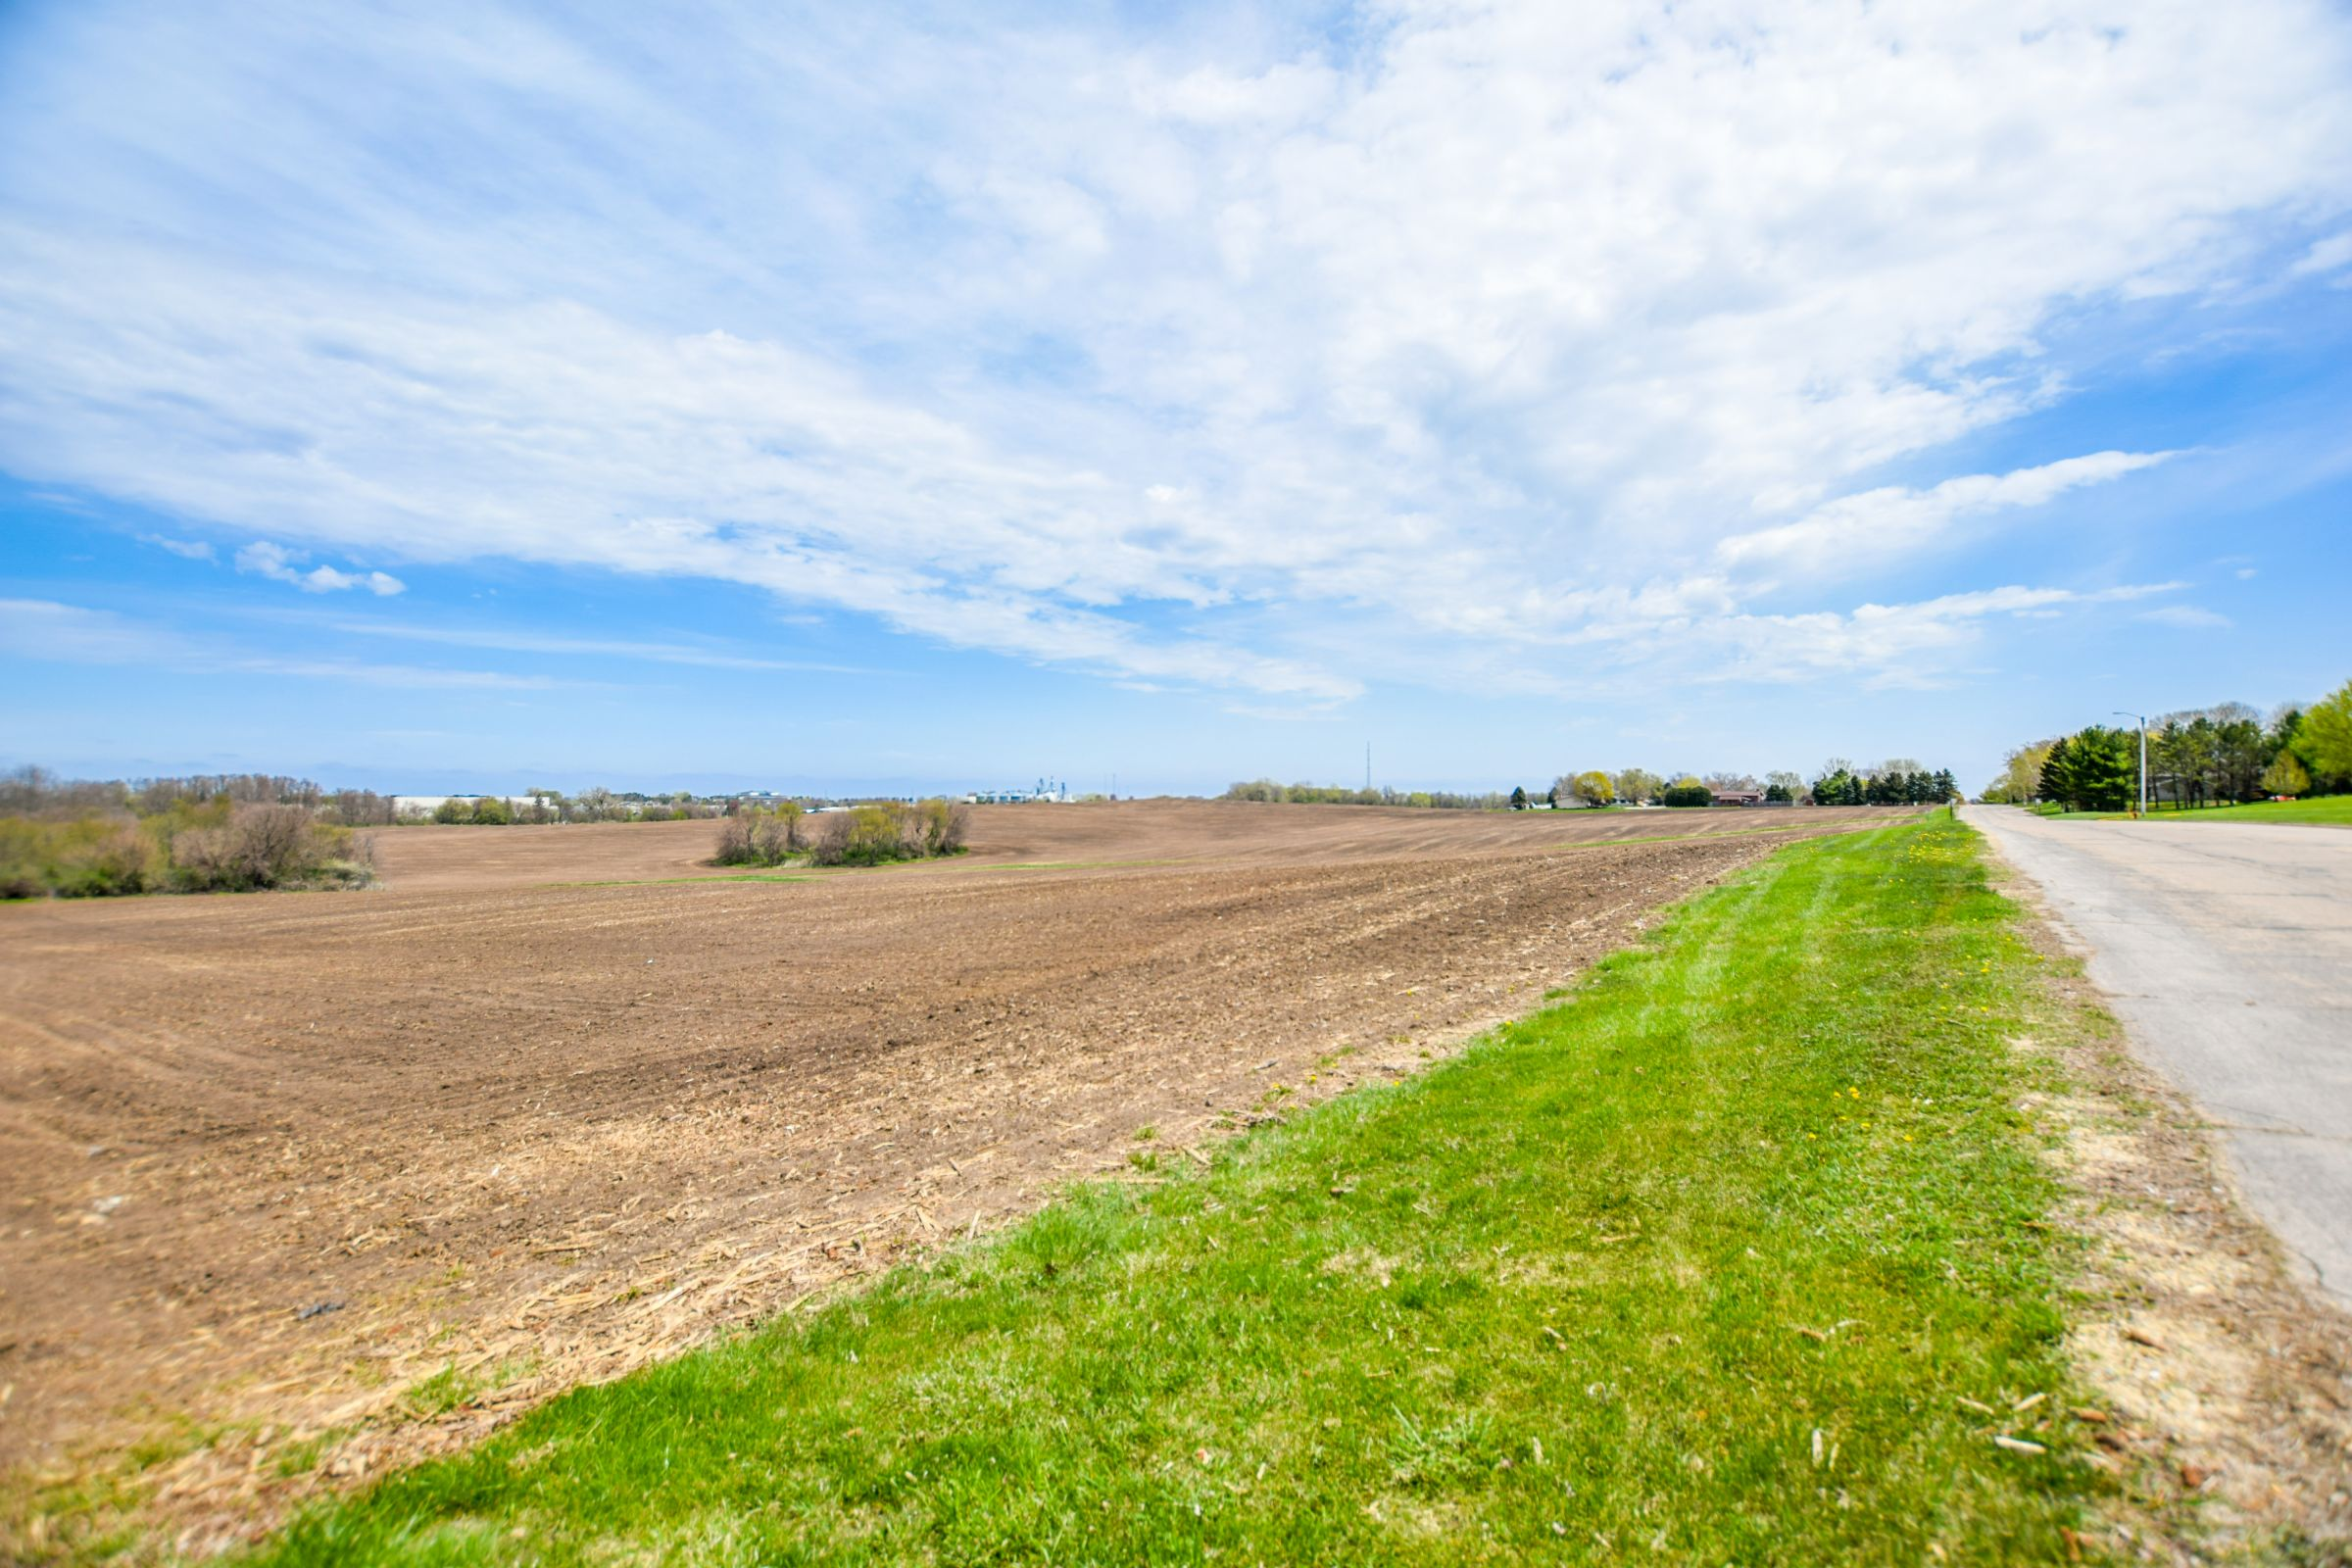 development-land-commercial-iowa-county-wisconsin-152-acres-listing-number-15474-0-2021-05-18-170907.jpg